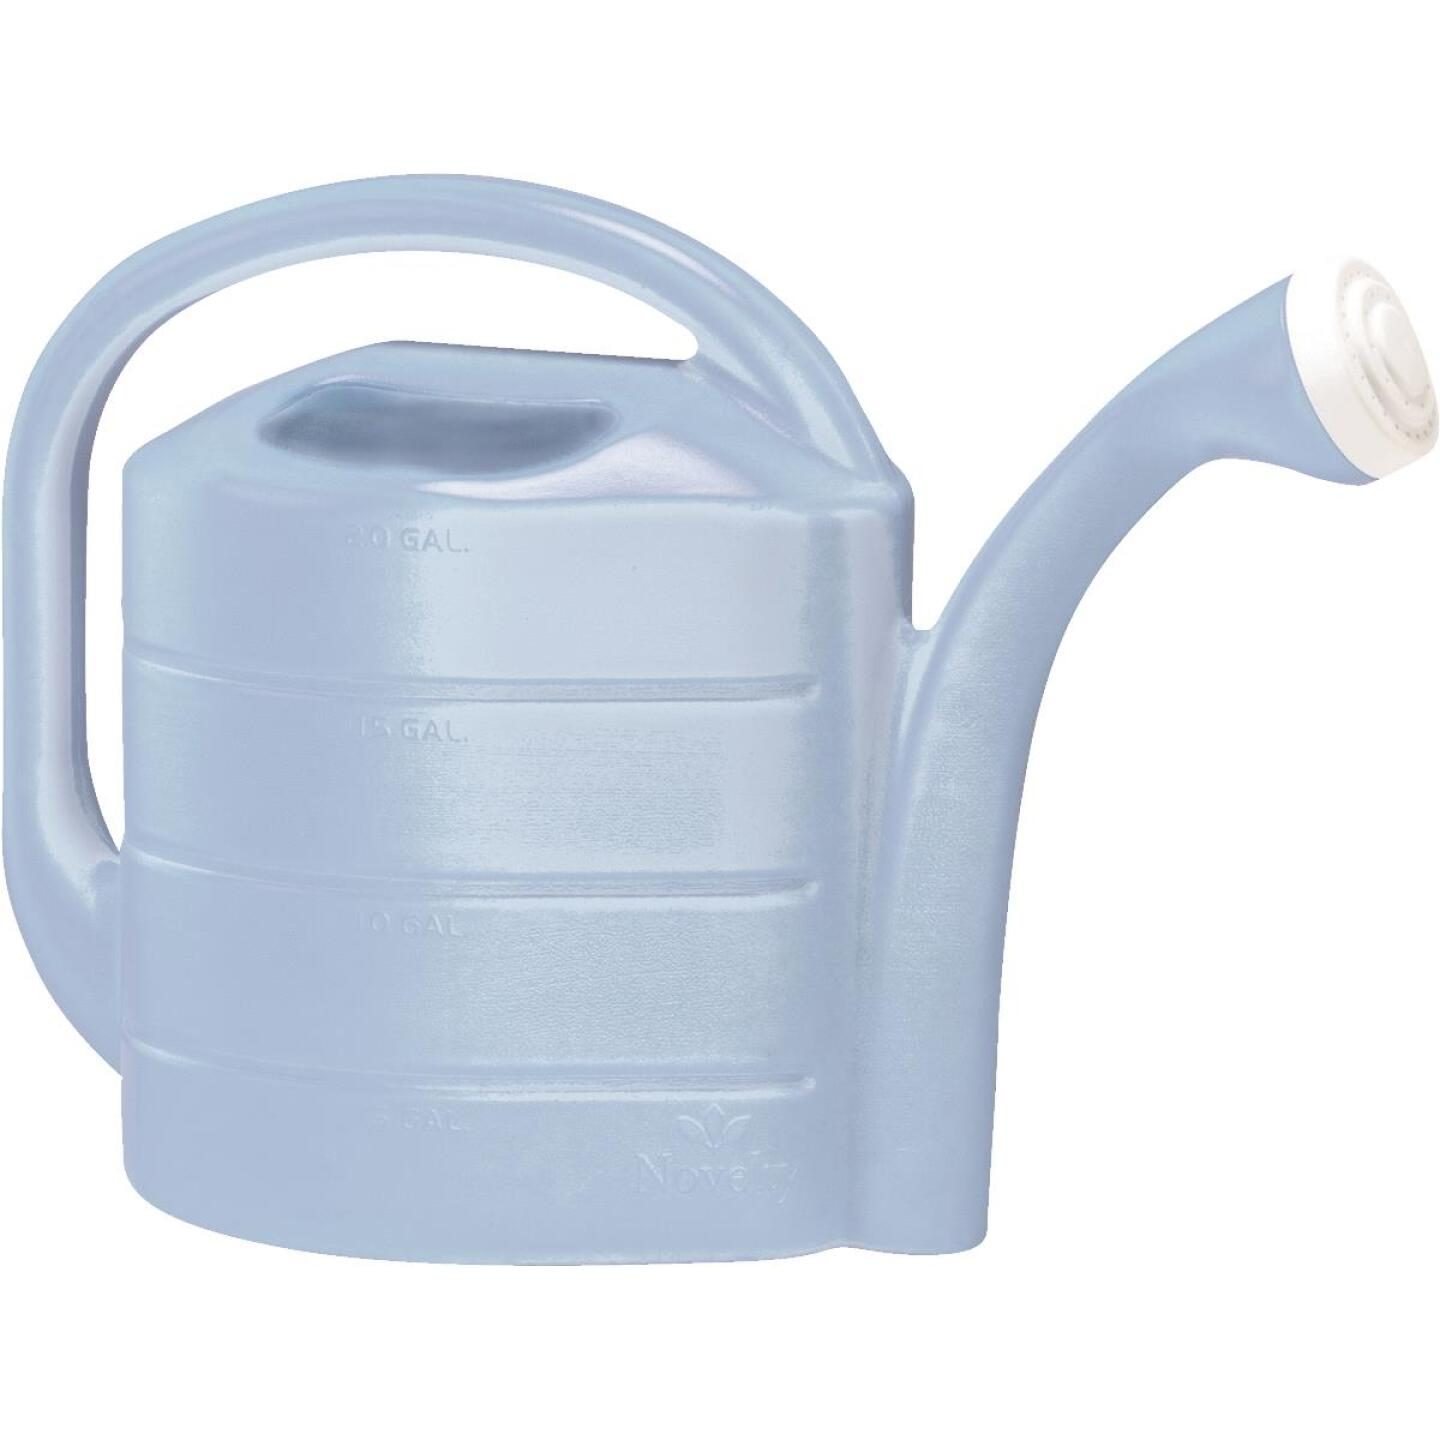 Novelty 2 Gal. Sky Blue Poly Watering Can Image 1